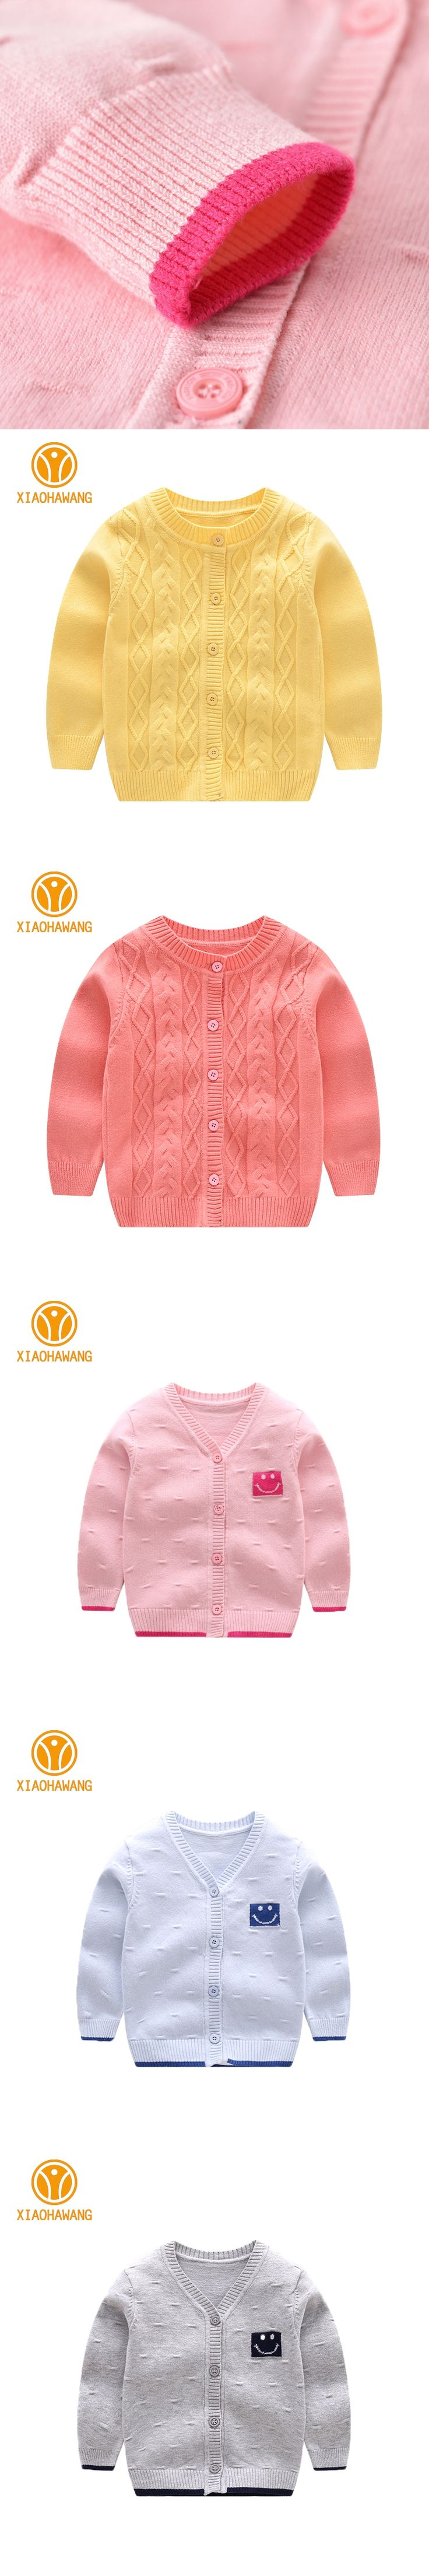 Solid Baby Sweater Long Sleeve Baby Boys Sweaters Knitted Cotton Newborn Coat Smile Girls Cardigan Sweaters